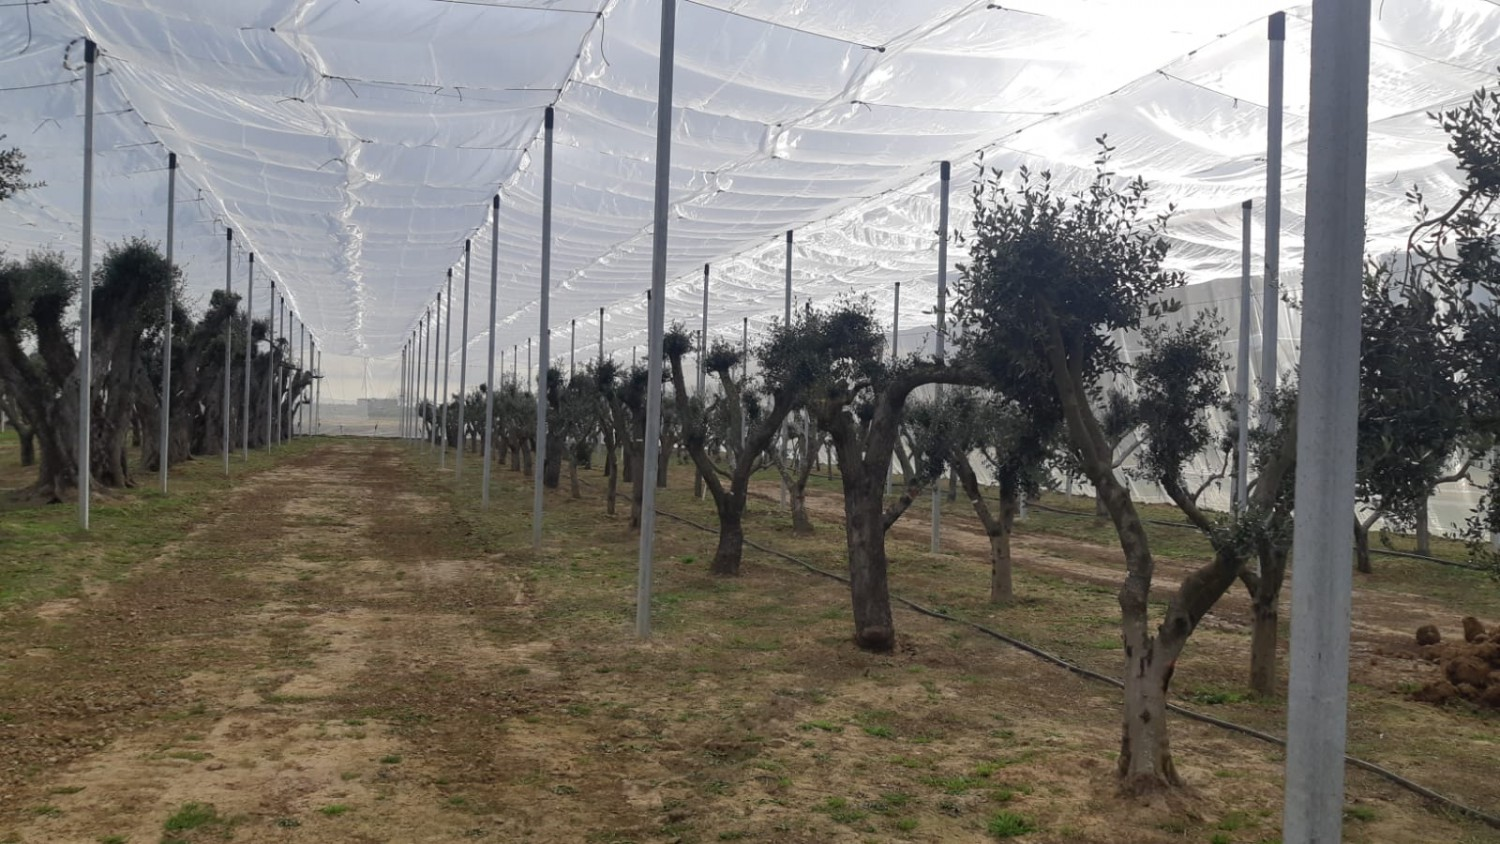 Insect net protection above olive trees